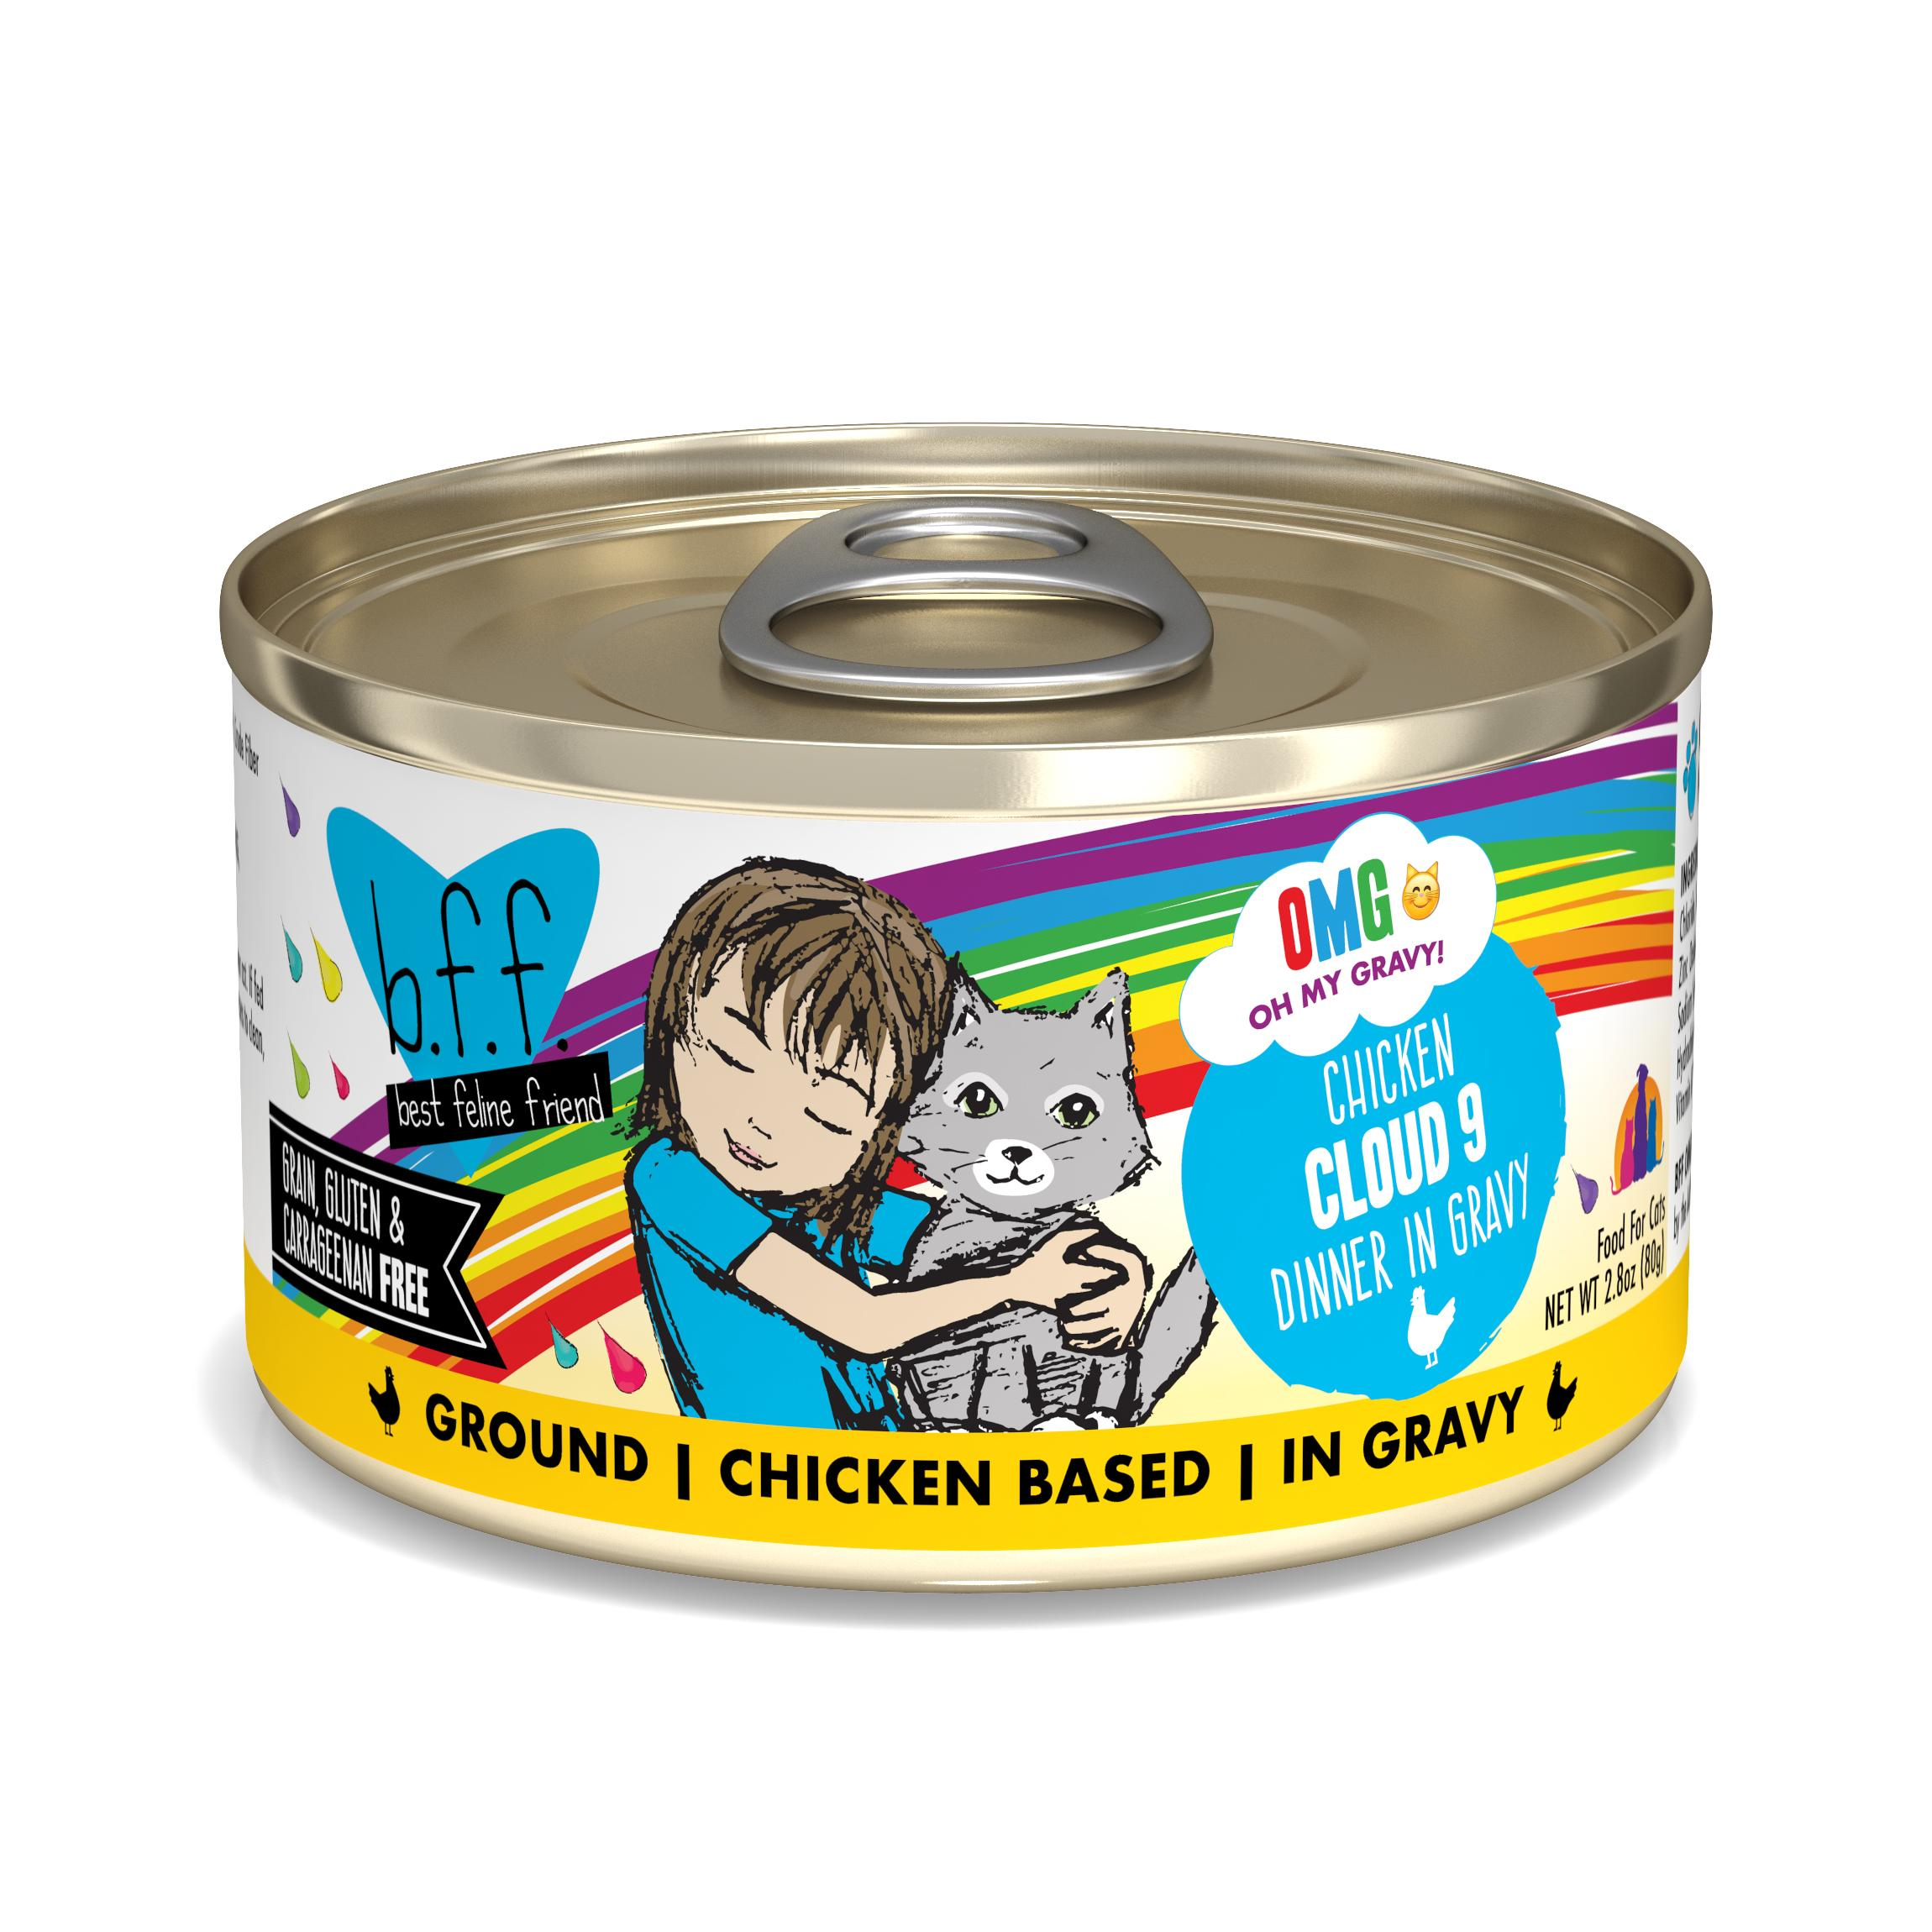 BFF Oh My Gravy! Cloud 9! Chicken Dinner in Gravy Grain-Free Wet Cat Food Image